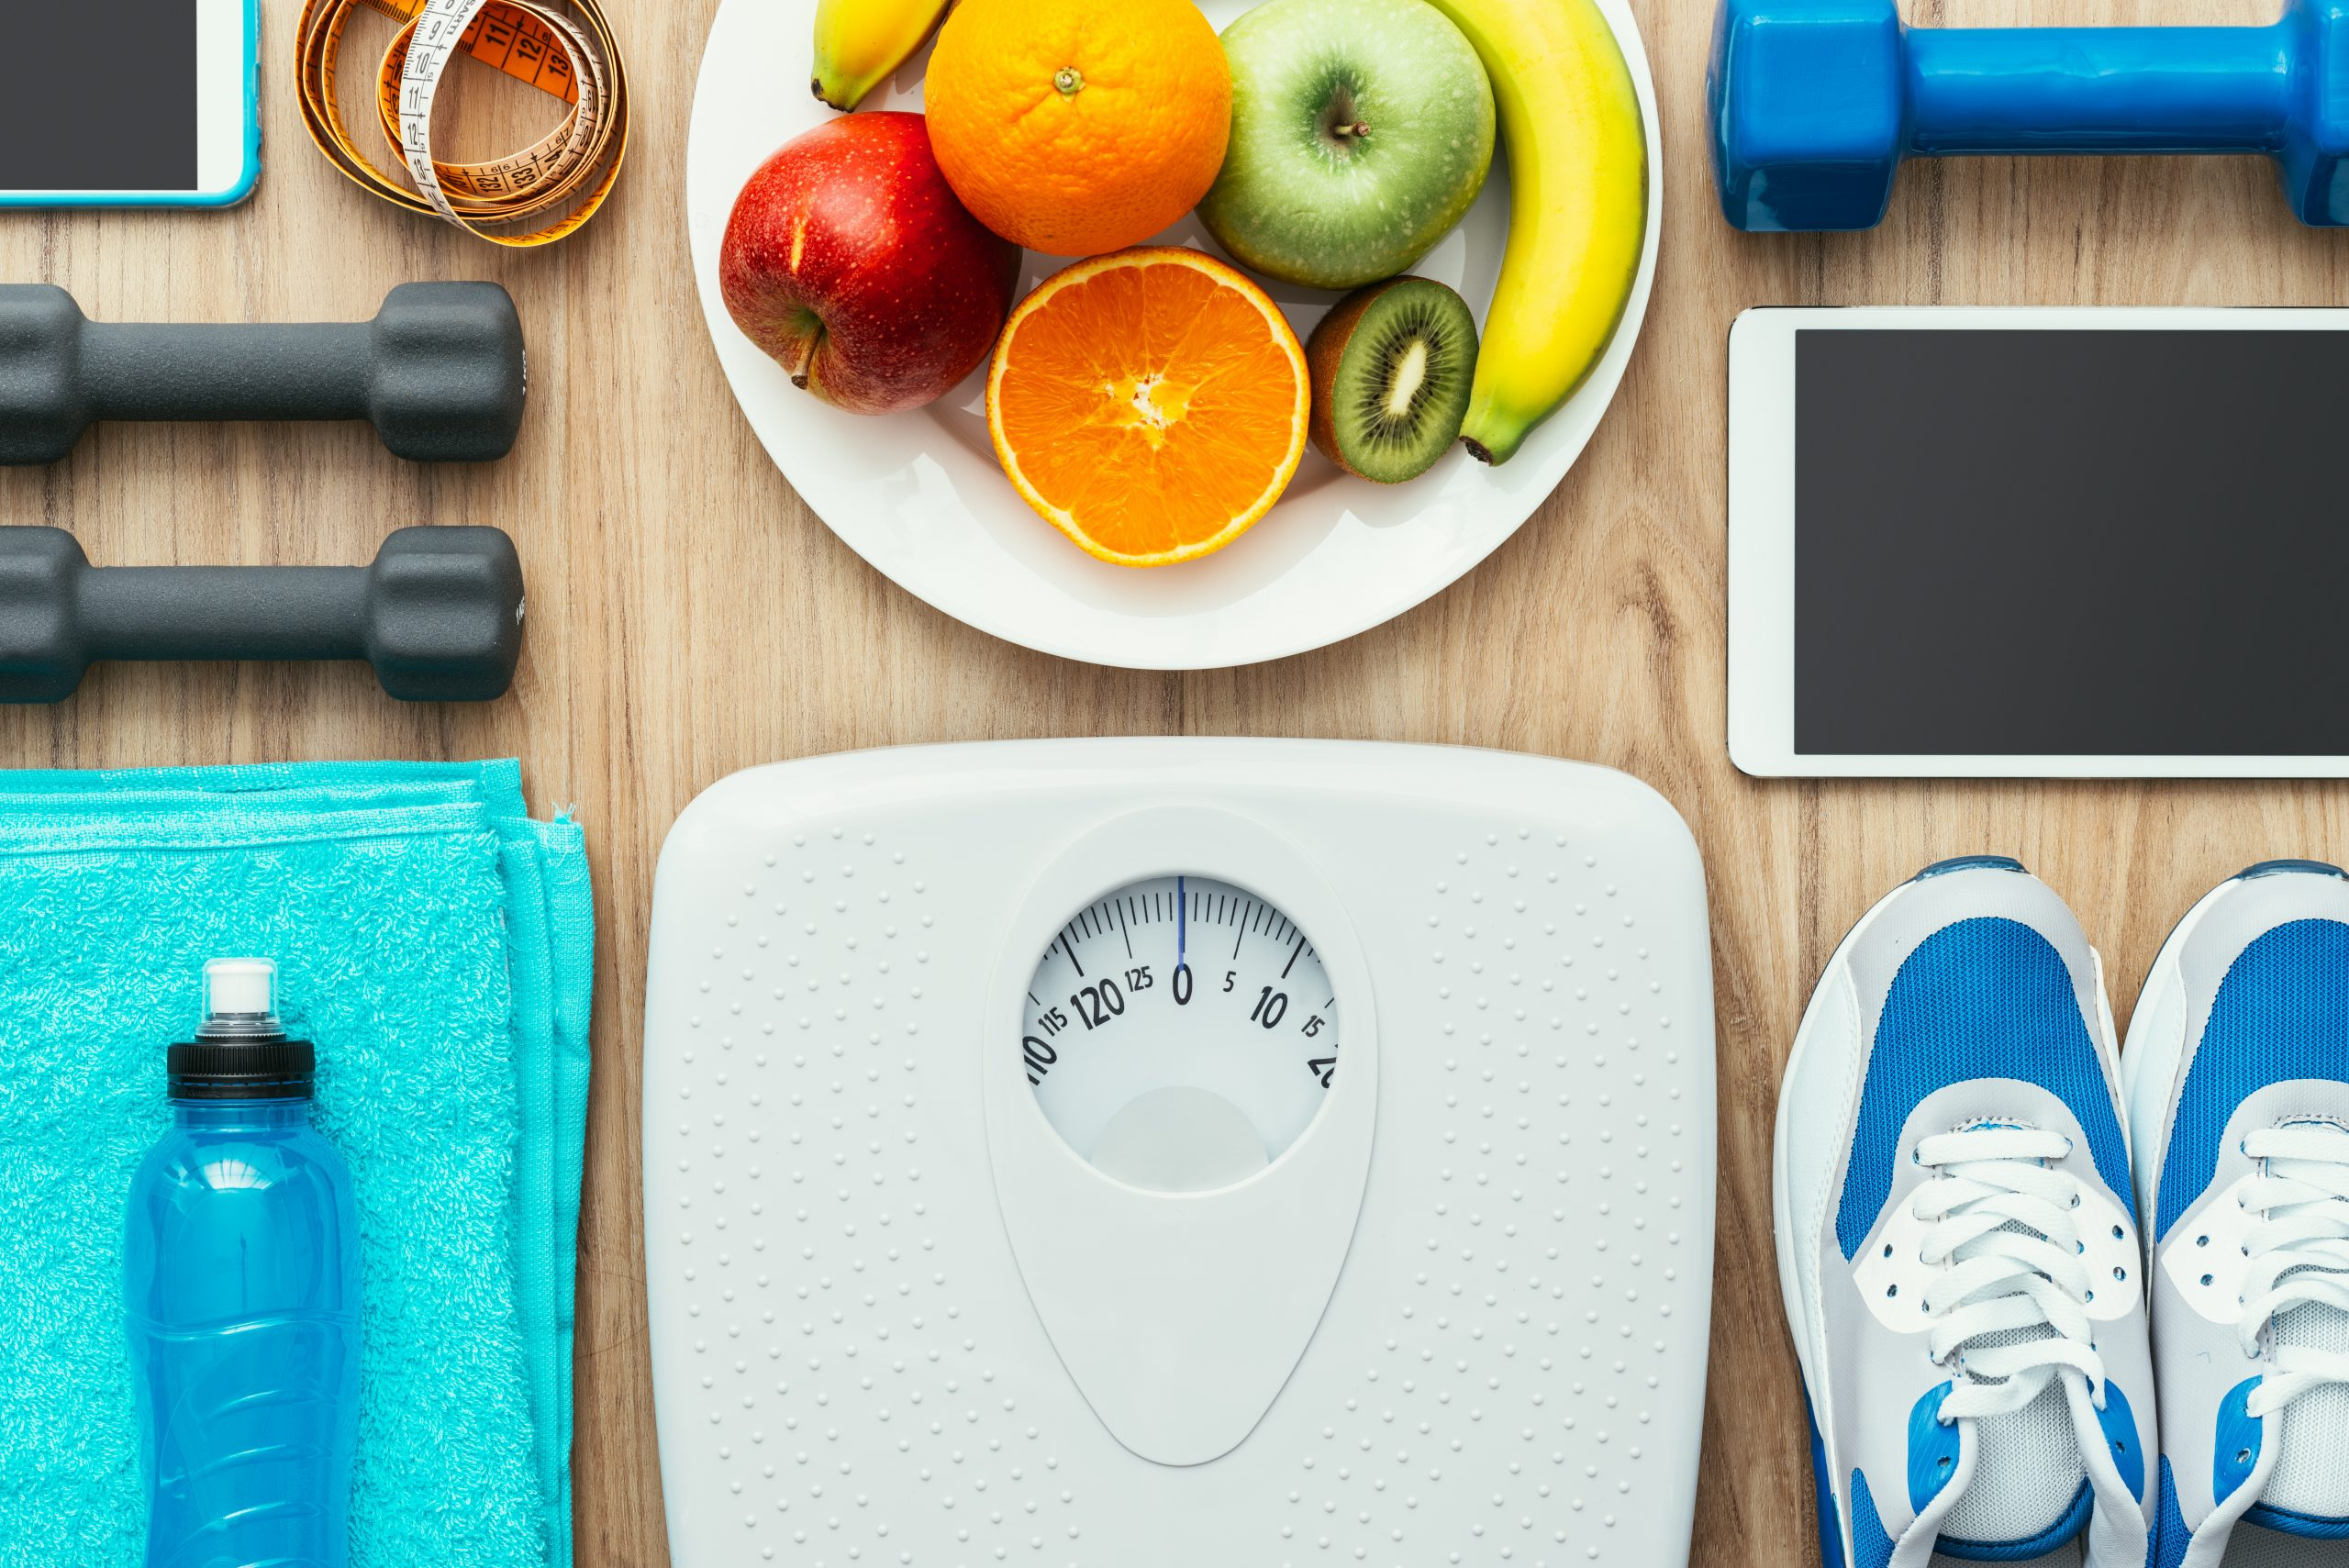 "Pictured is a blue water bottle, a bright blue towel, a white scale, a pair of blue and white tennis shoes, an electronic tablet, a set of black weights, a blue weight, a plate of fruits including an orance, a red apple, a greem apple, and a banana, a cell phone, and a measuring tape. This image is included in Passive Income MDs Saturday Syndication with White Coat Investor, titled ""5 Ways that Weight Loss is Like Investing."""